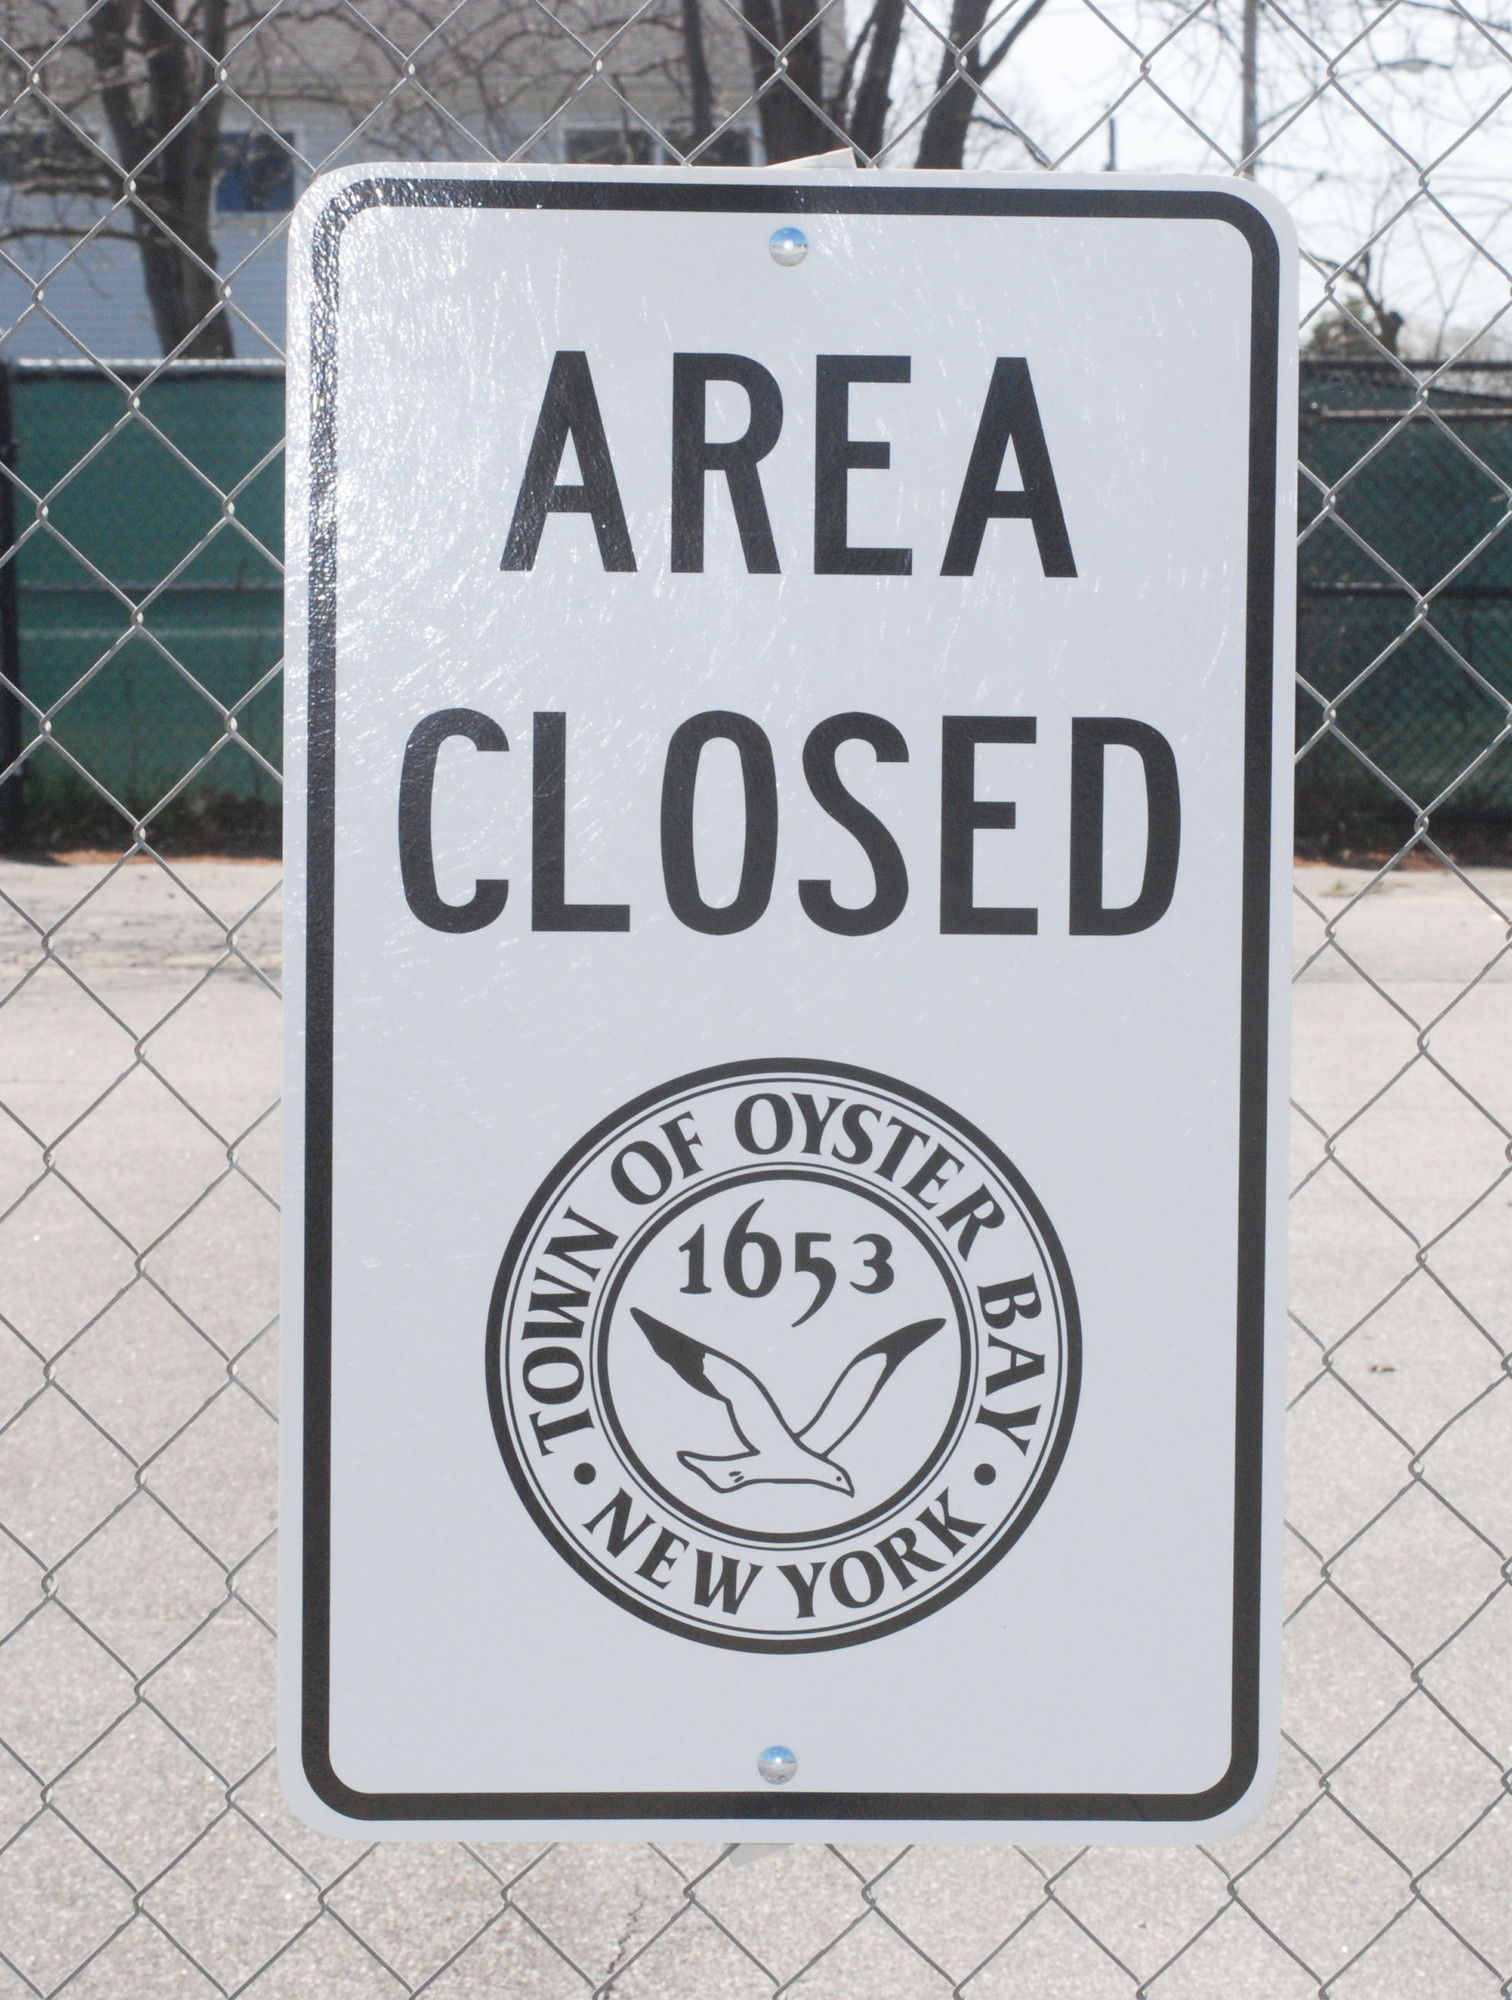 The Town of Oyster Bay closed the playground and tennis courts at Bethpage Community Park last week after officials received an anonymous tip that chemical drums might be buried at the site.